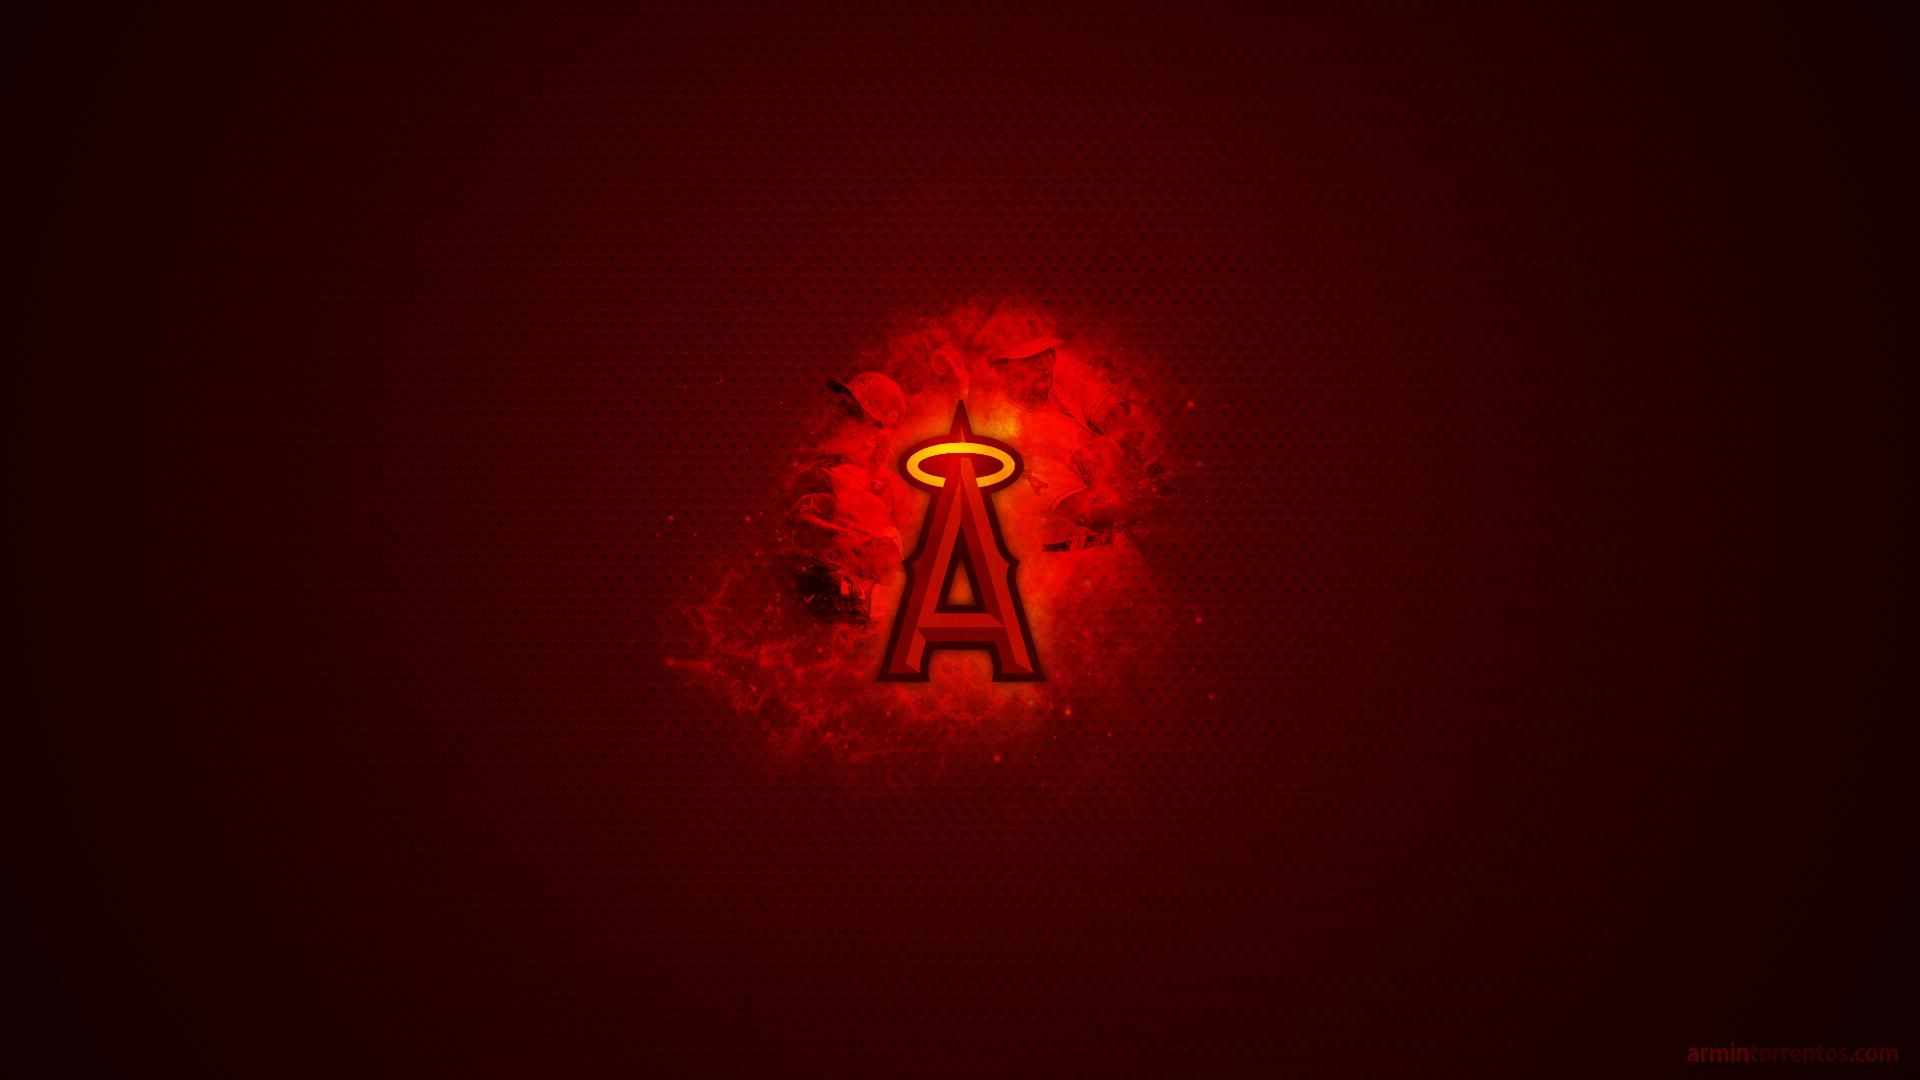 1920x1080 - Los Angeles Angels of Anaheim Wallpapers 23